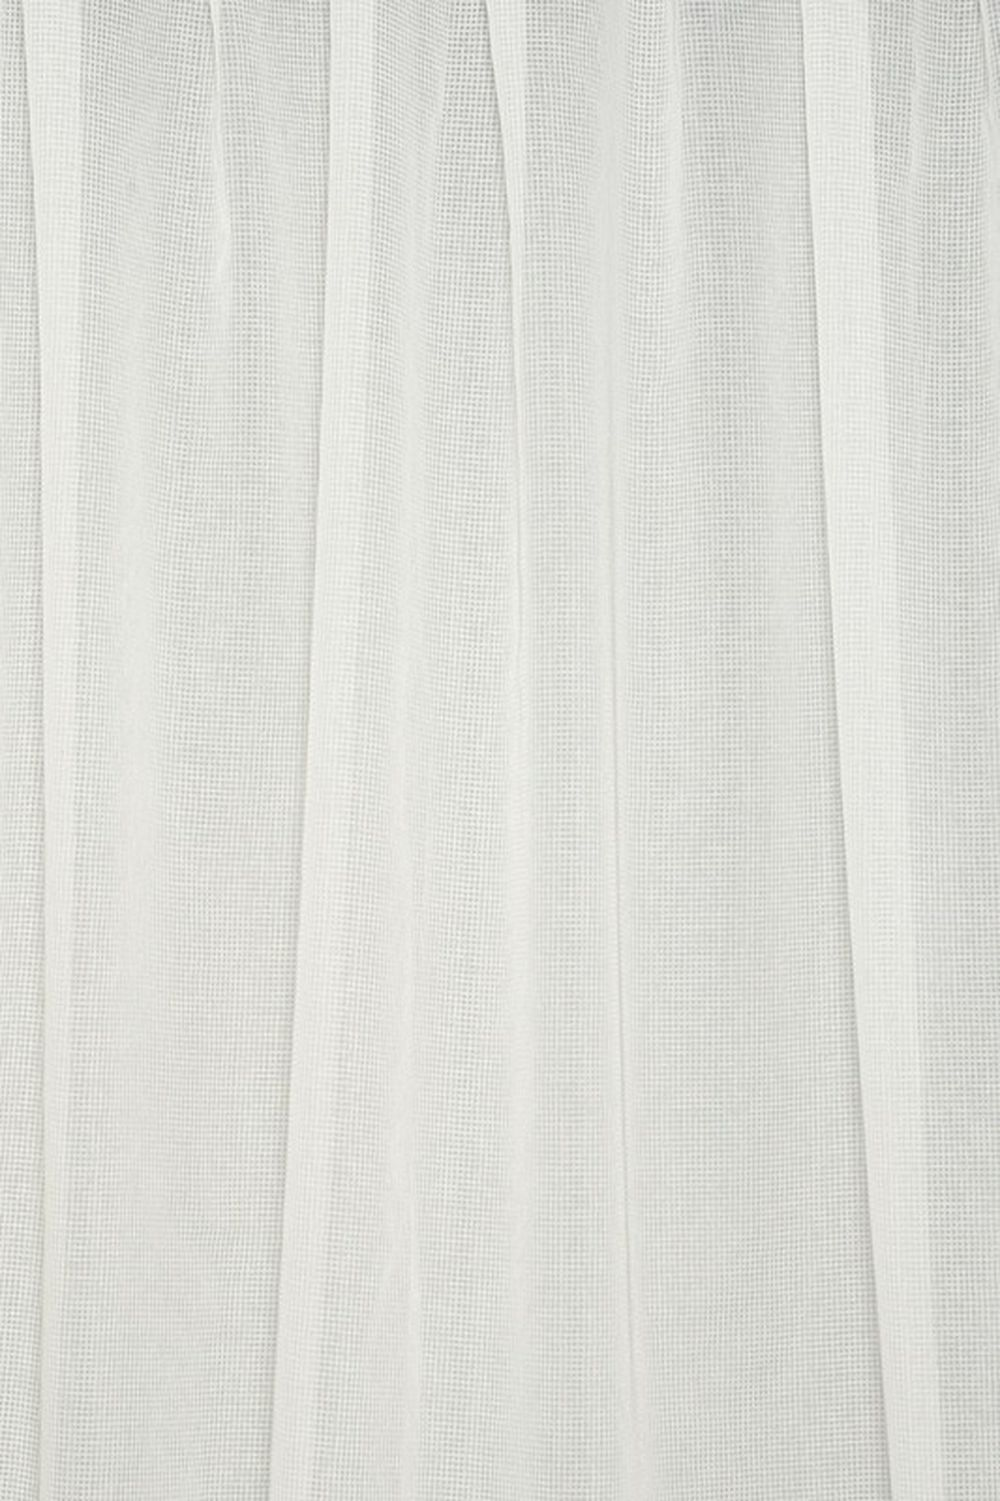 Photo of the fabric Ascend * Blanc swatch by Pegasus. Use for Drapery Sheer. Style of Plain, Sheer